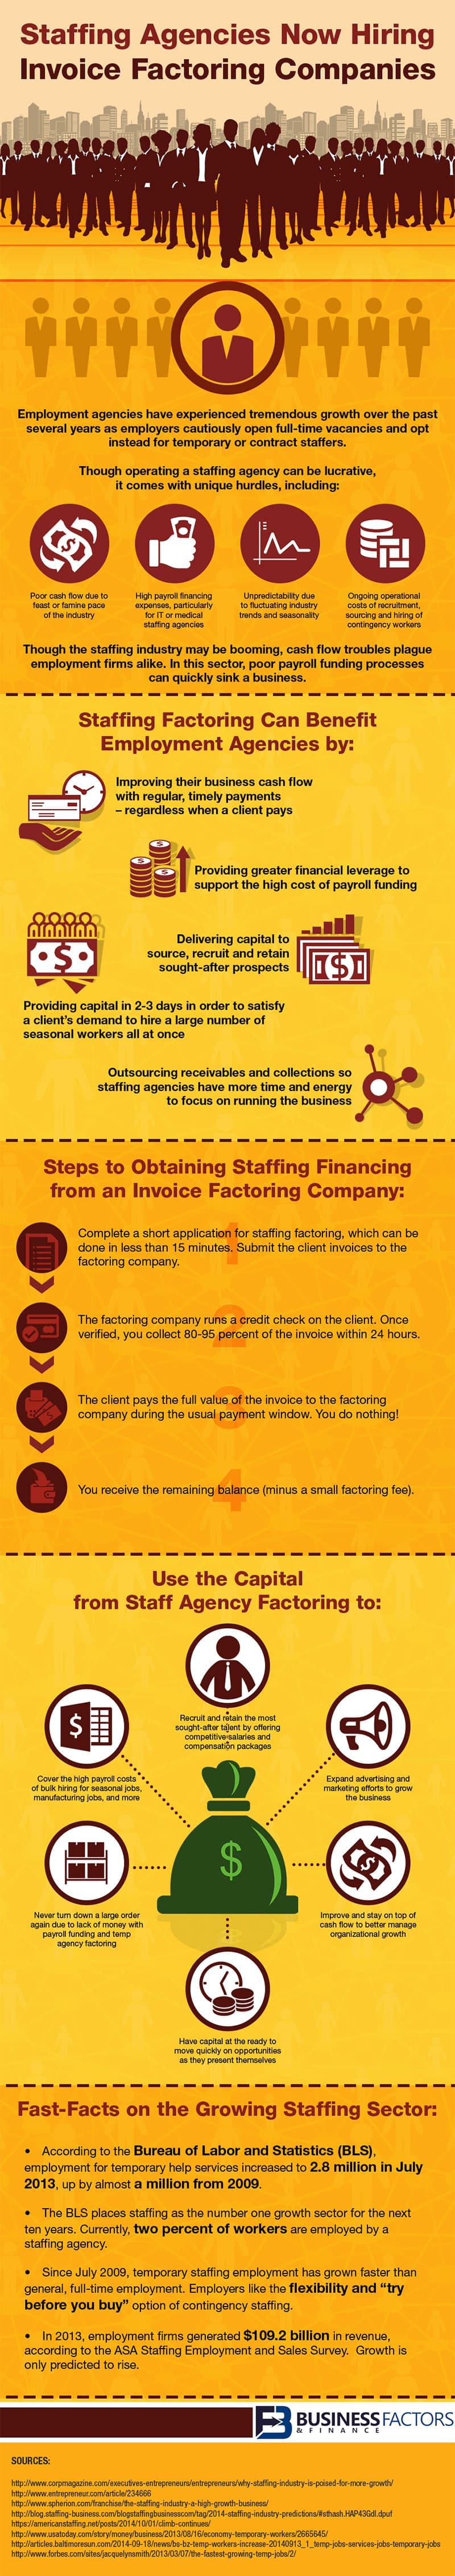 nfographic explains how staffing agencies are using factoring for reliable and steady cash flow to cover the many costs related to employment firms